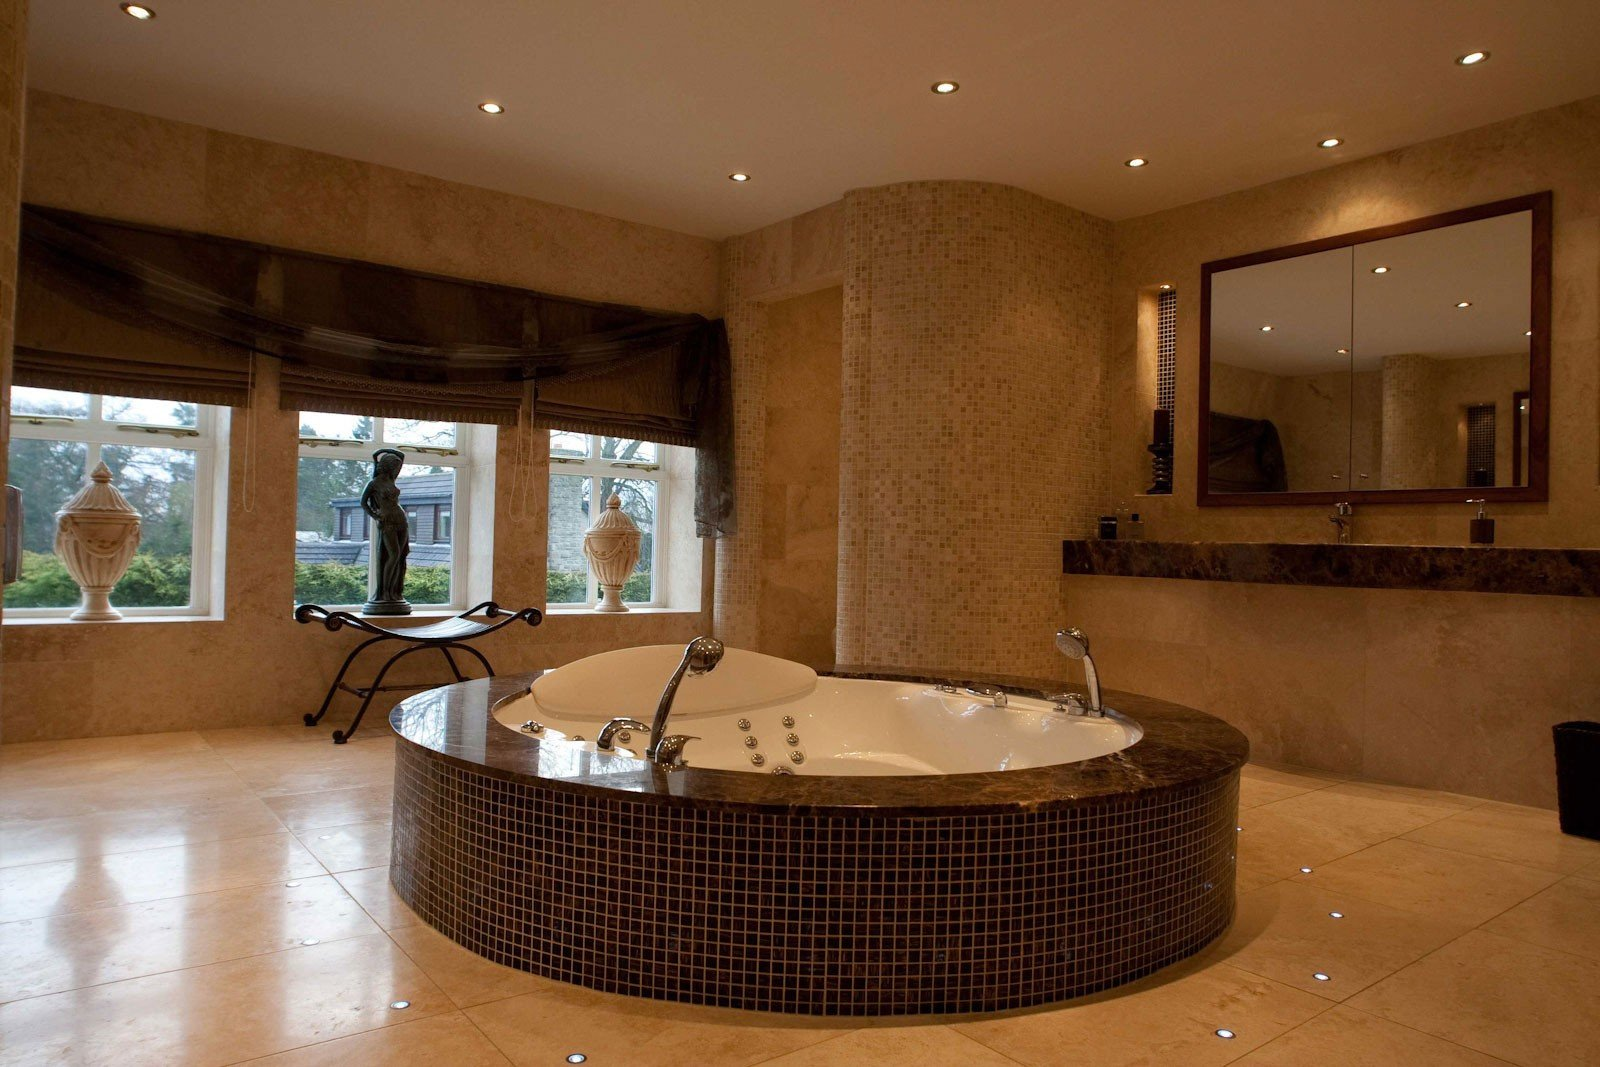 Spa Decor Ideas for Home Inspirational Inexpensive Way to Recreate atmosphere Of Spa In Your Bathroom